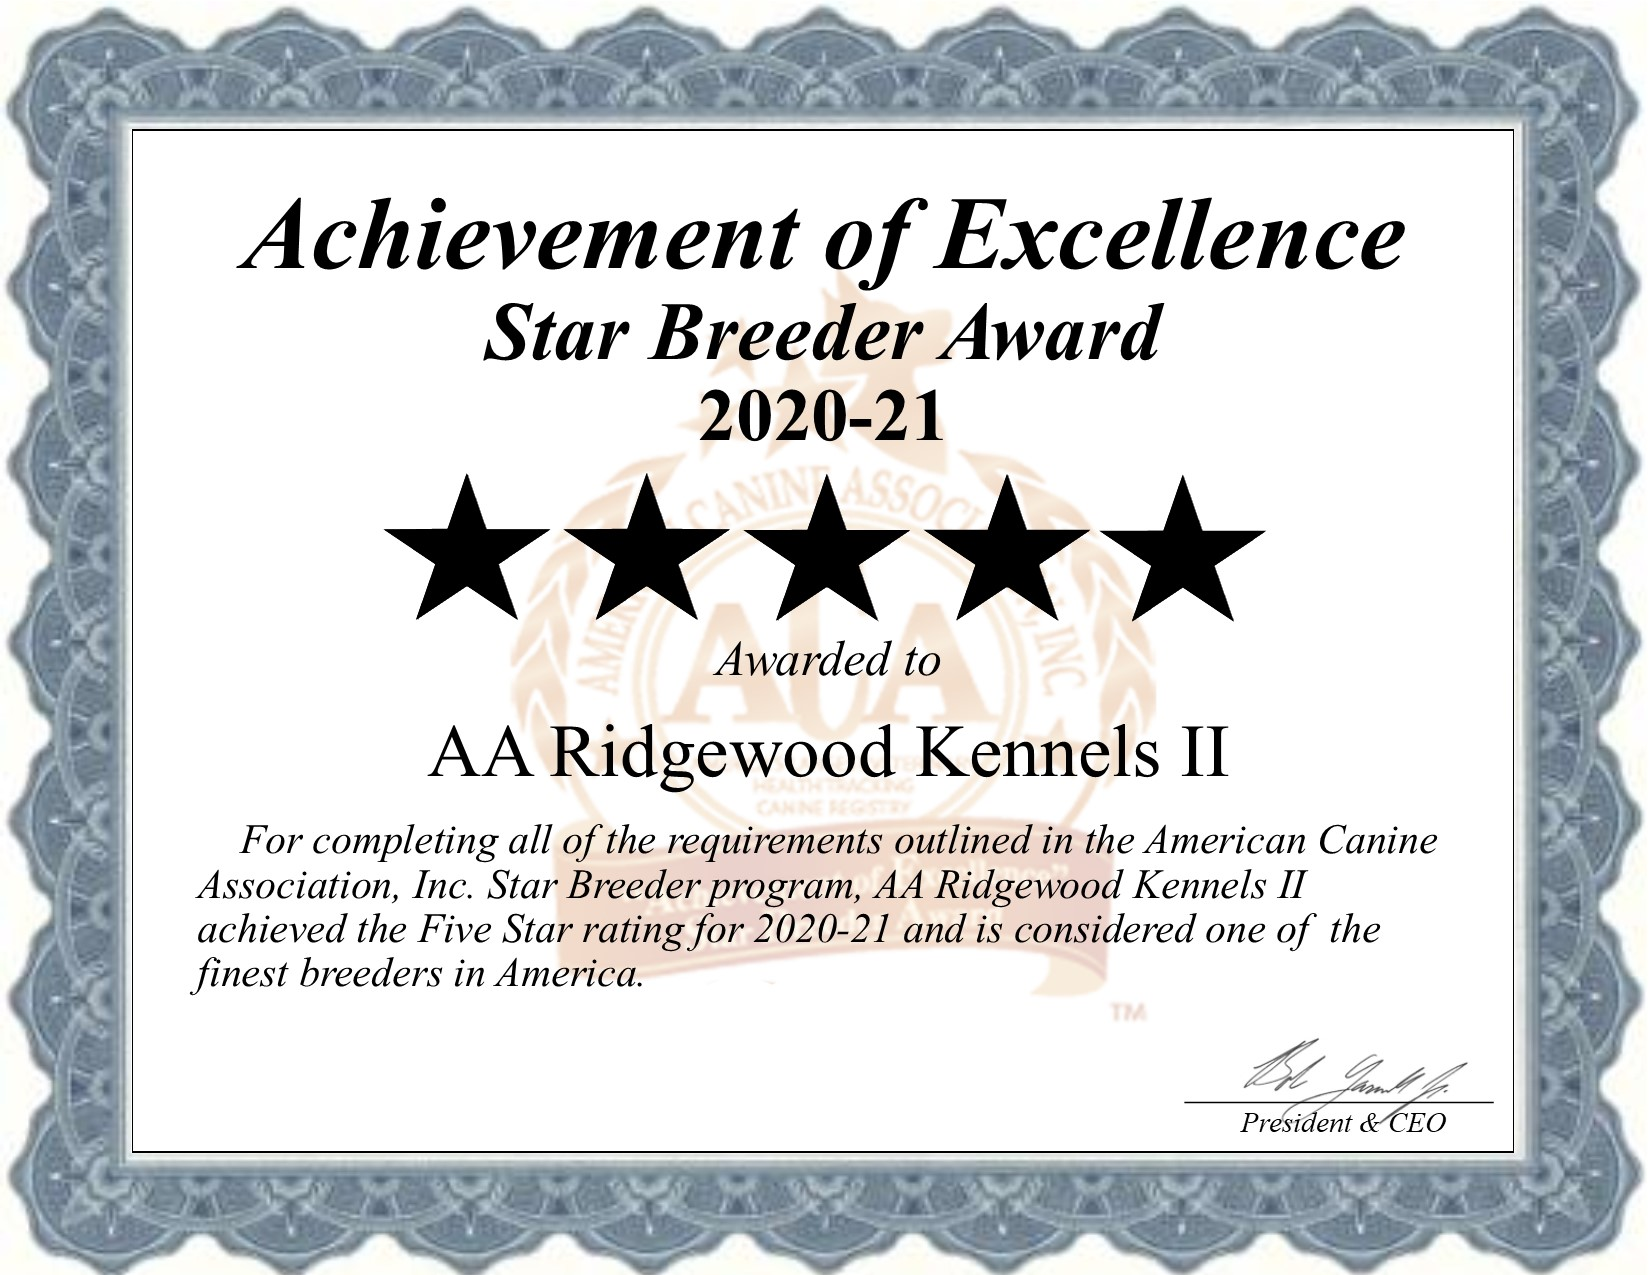 AA, Ridgewood, Kennels, II, dog, breeder, certificate, aa-ridgewood-kennels-ii, dog-breeder, kinzer, gap, shrewsbury, pa, pennsylvania, elizabethtown, usda, puppy, puppies, ACA, ICA, star, 5-star, ridge, wood, kennel, puppy, mill, puppymill